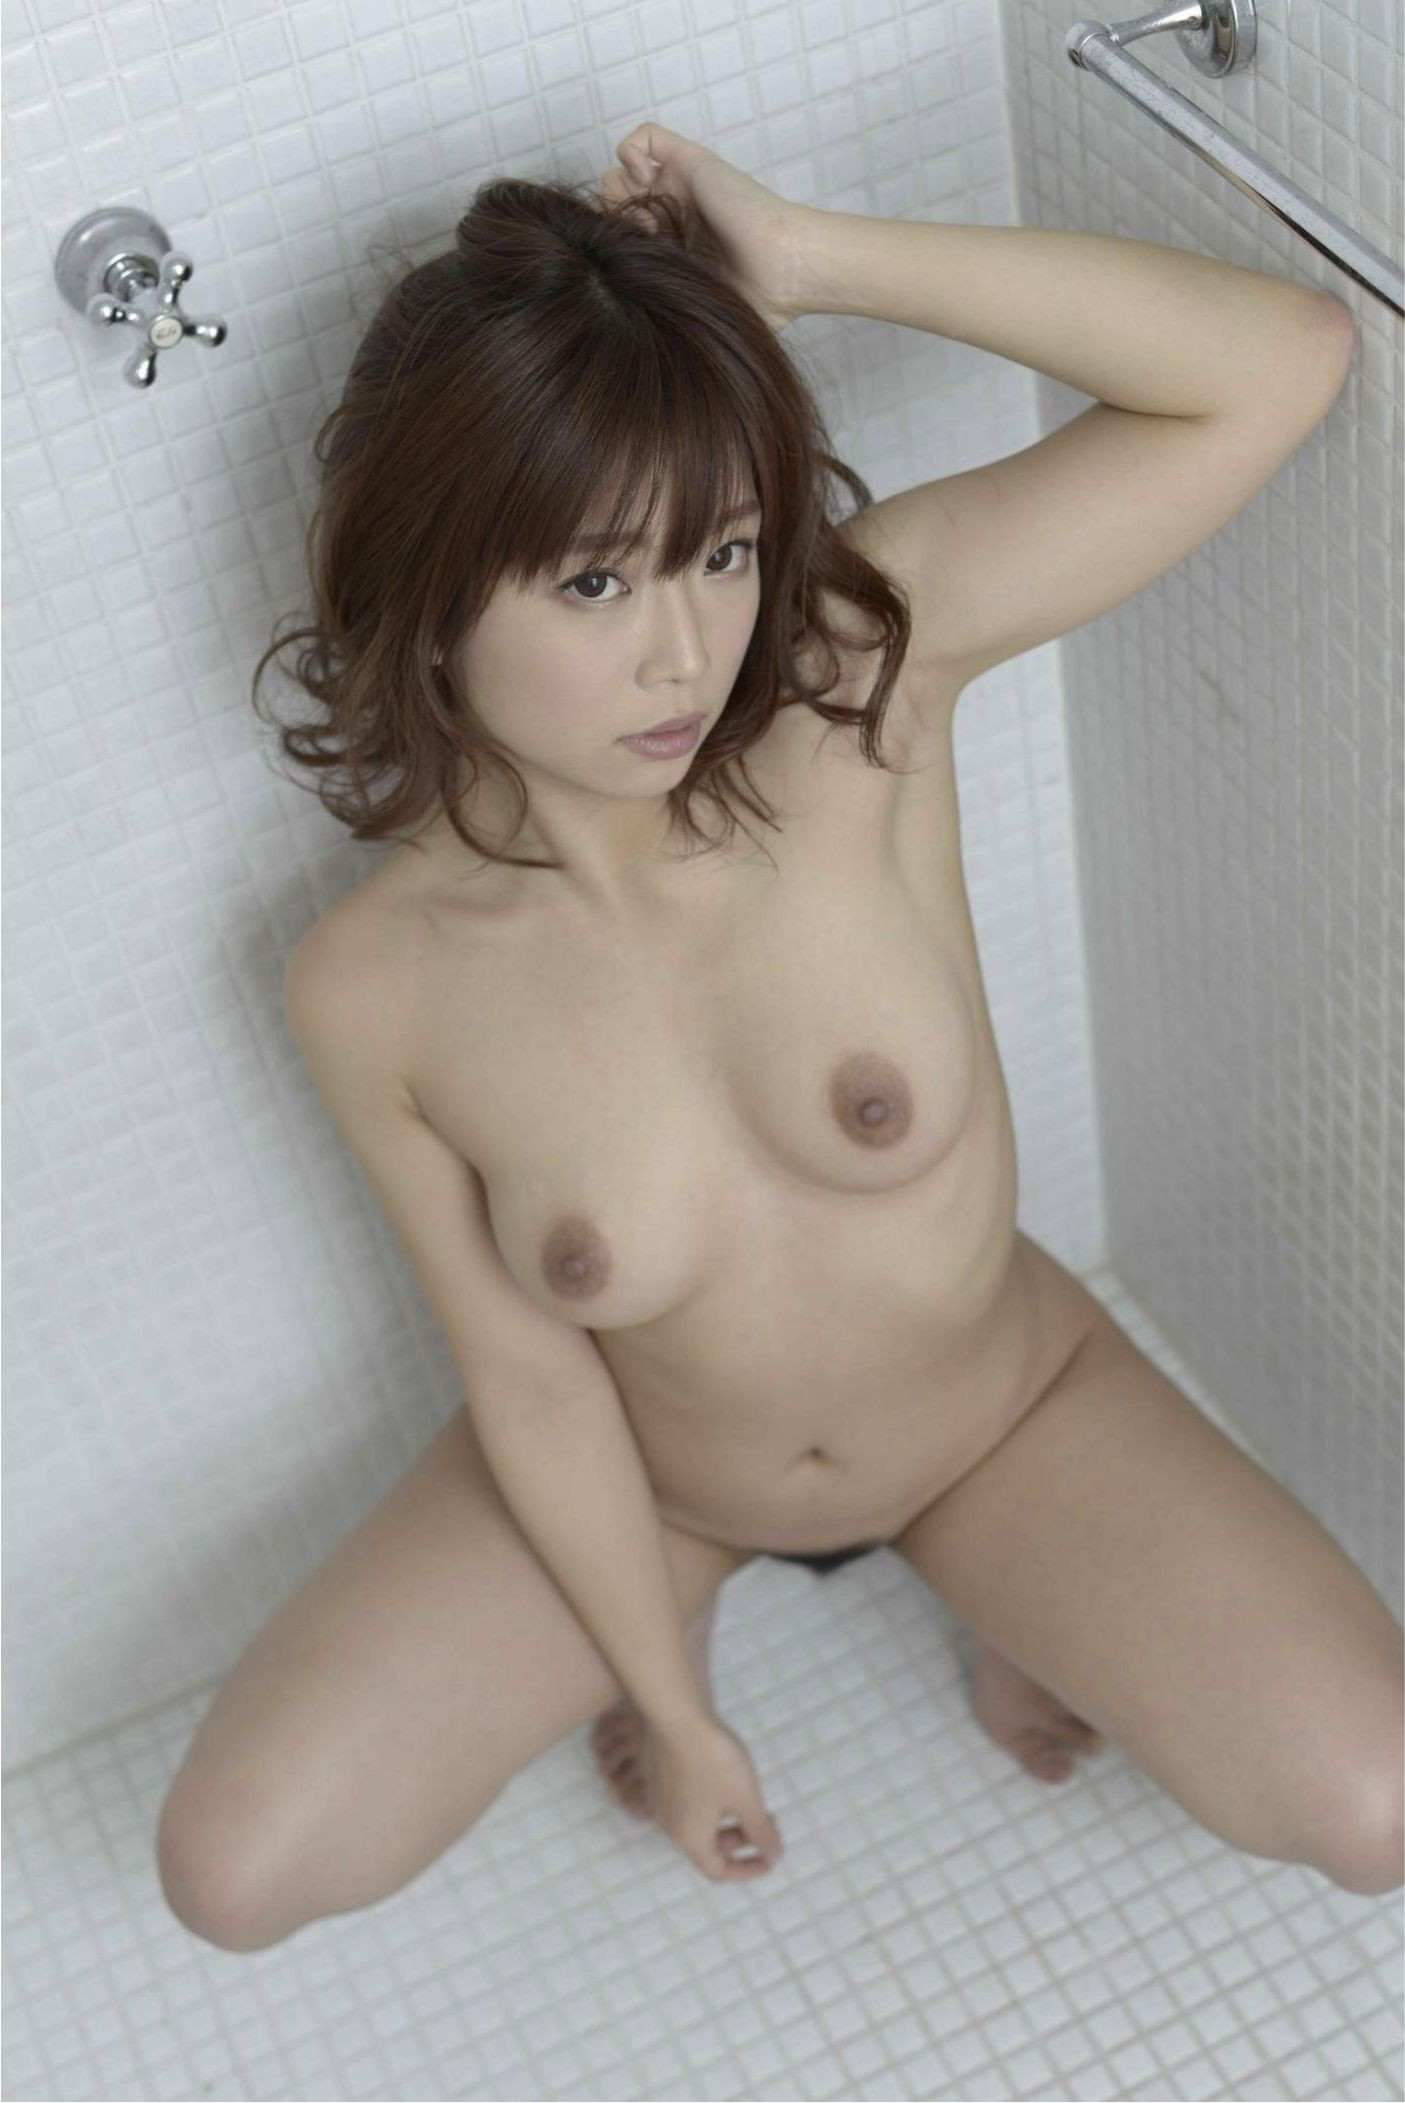 SOFT ON DEMAND GRAVURE COLLECTION 紗倉まな02 photo 123